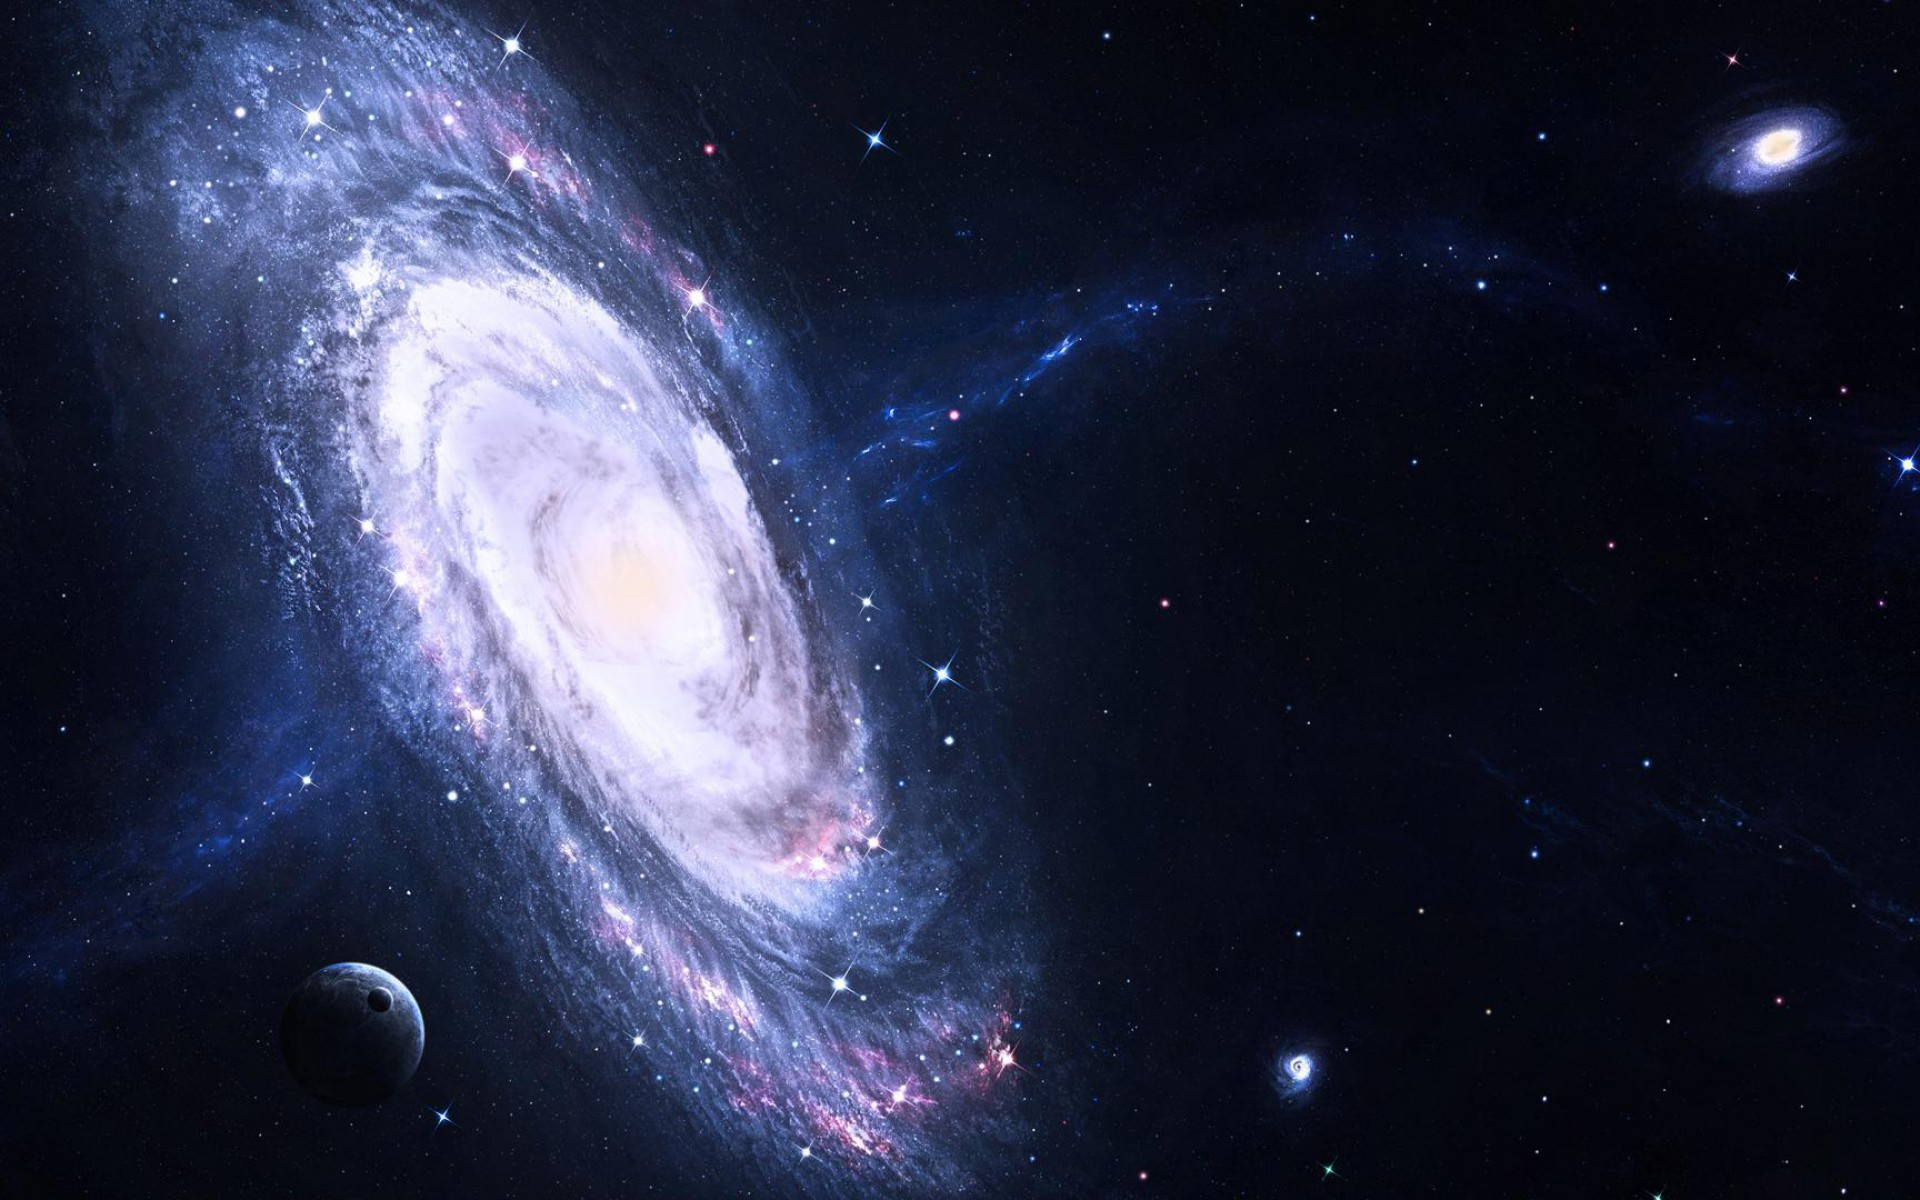 Moving Space Wallpaper 1080p 4k Wallpaper Space Black Hole